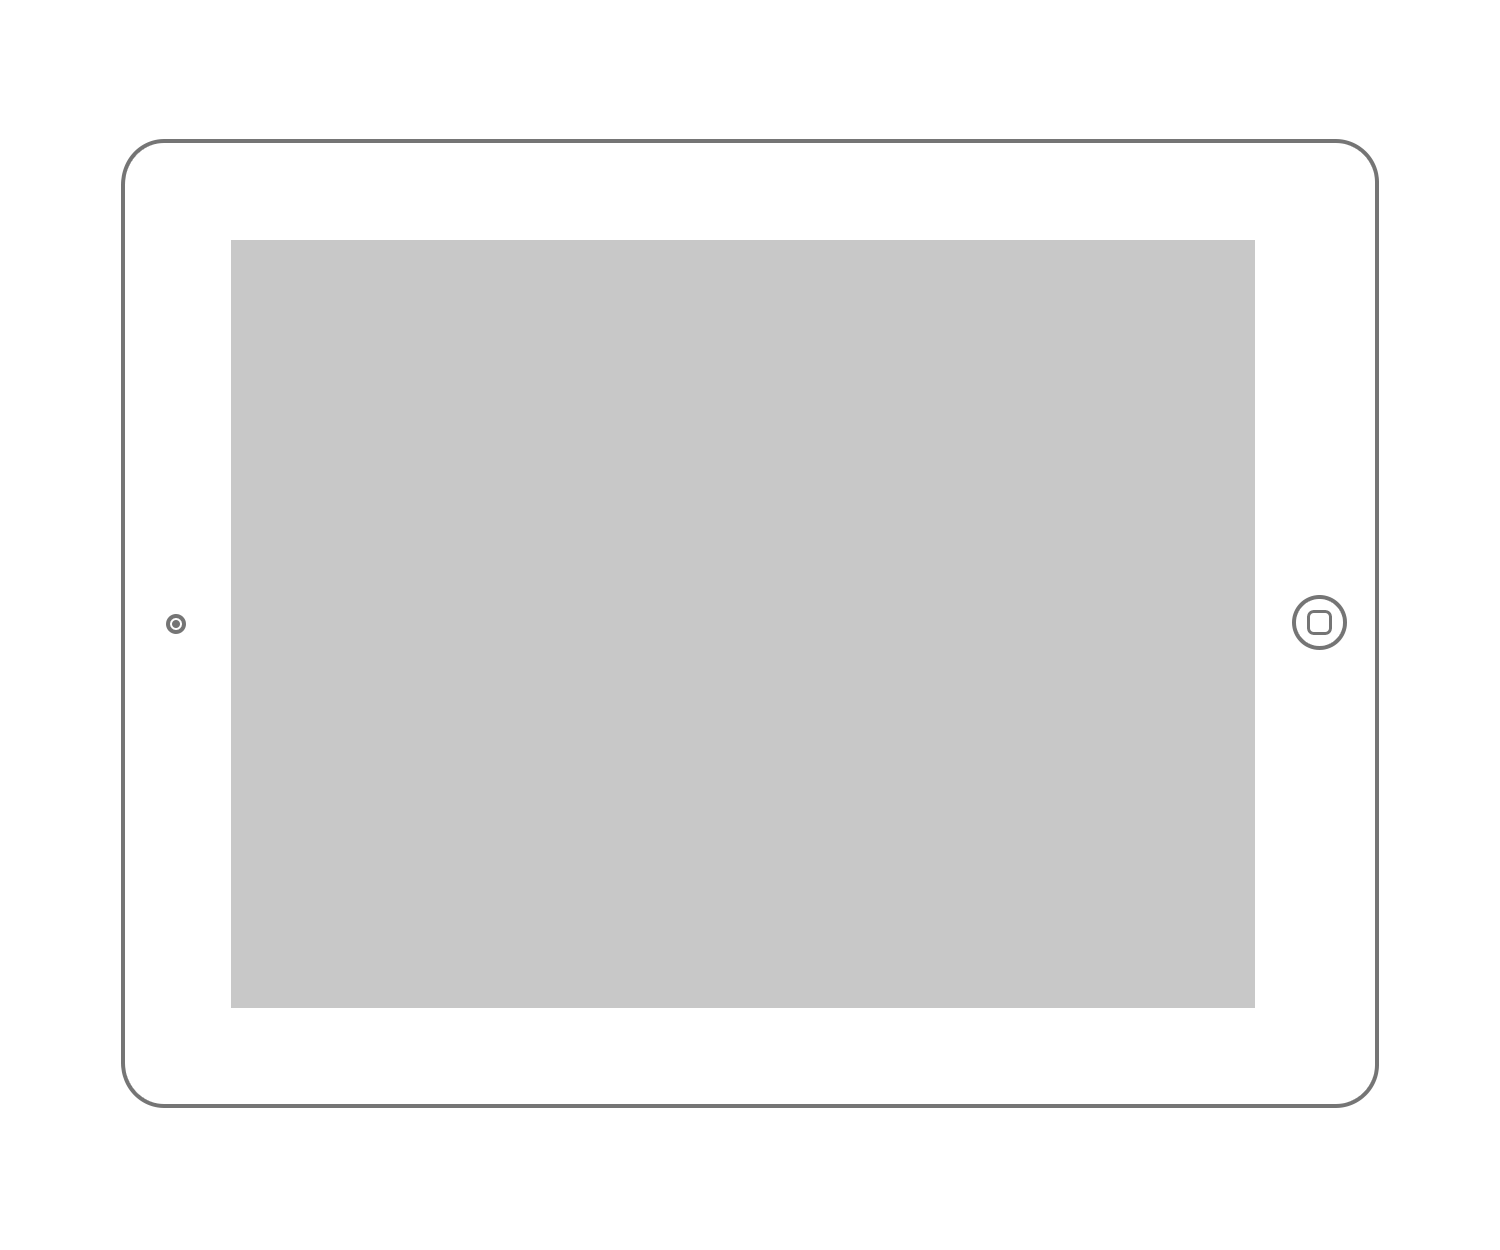 how to make an icon on an ipad